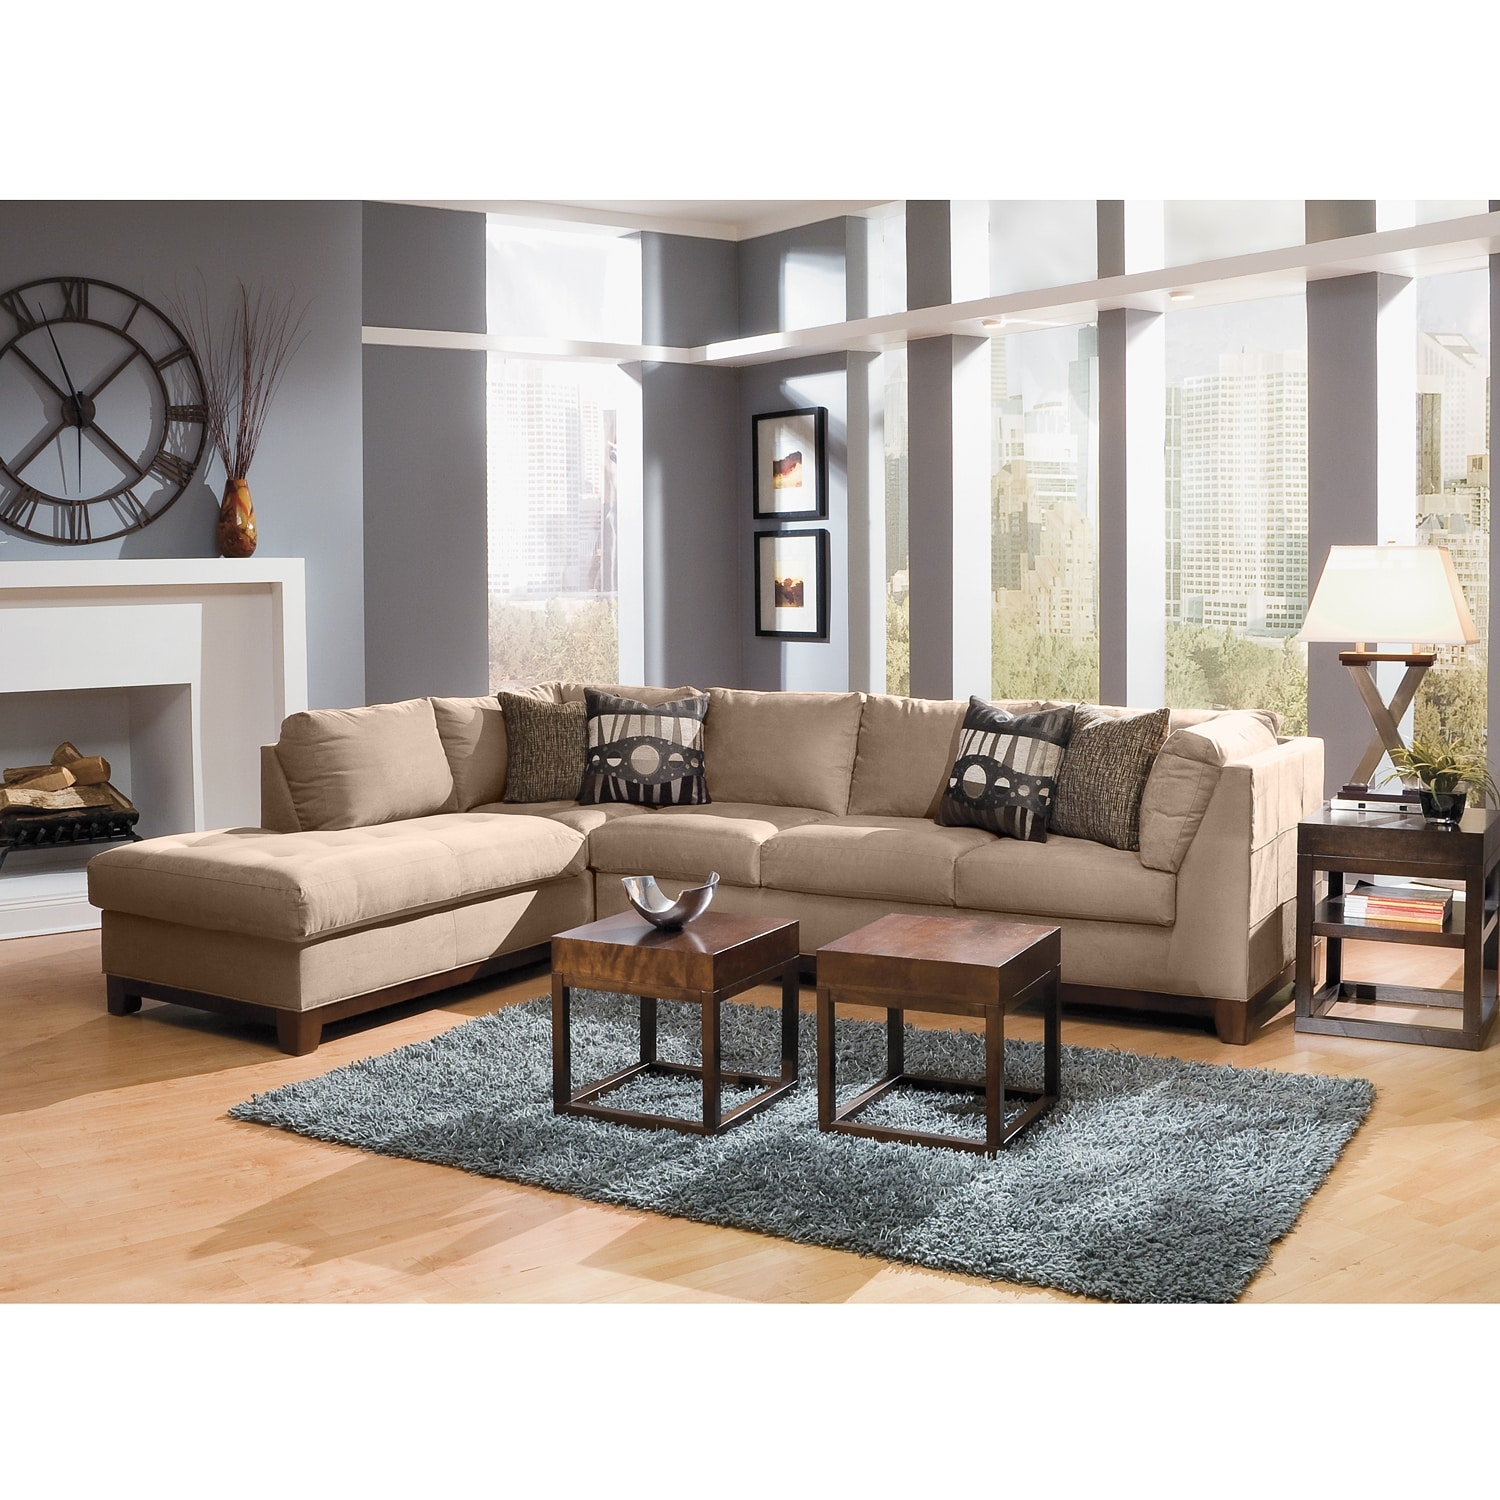 Soho II 2 Pc Sectional Reverse American Signature Furniture